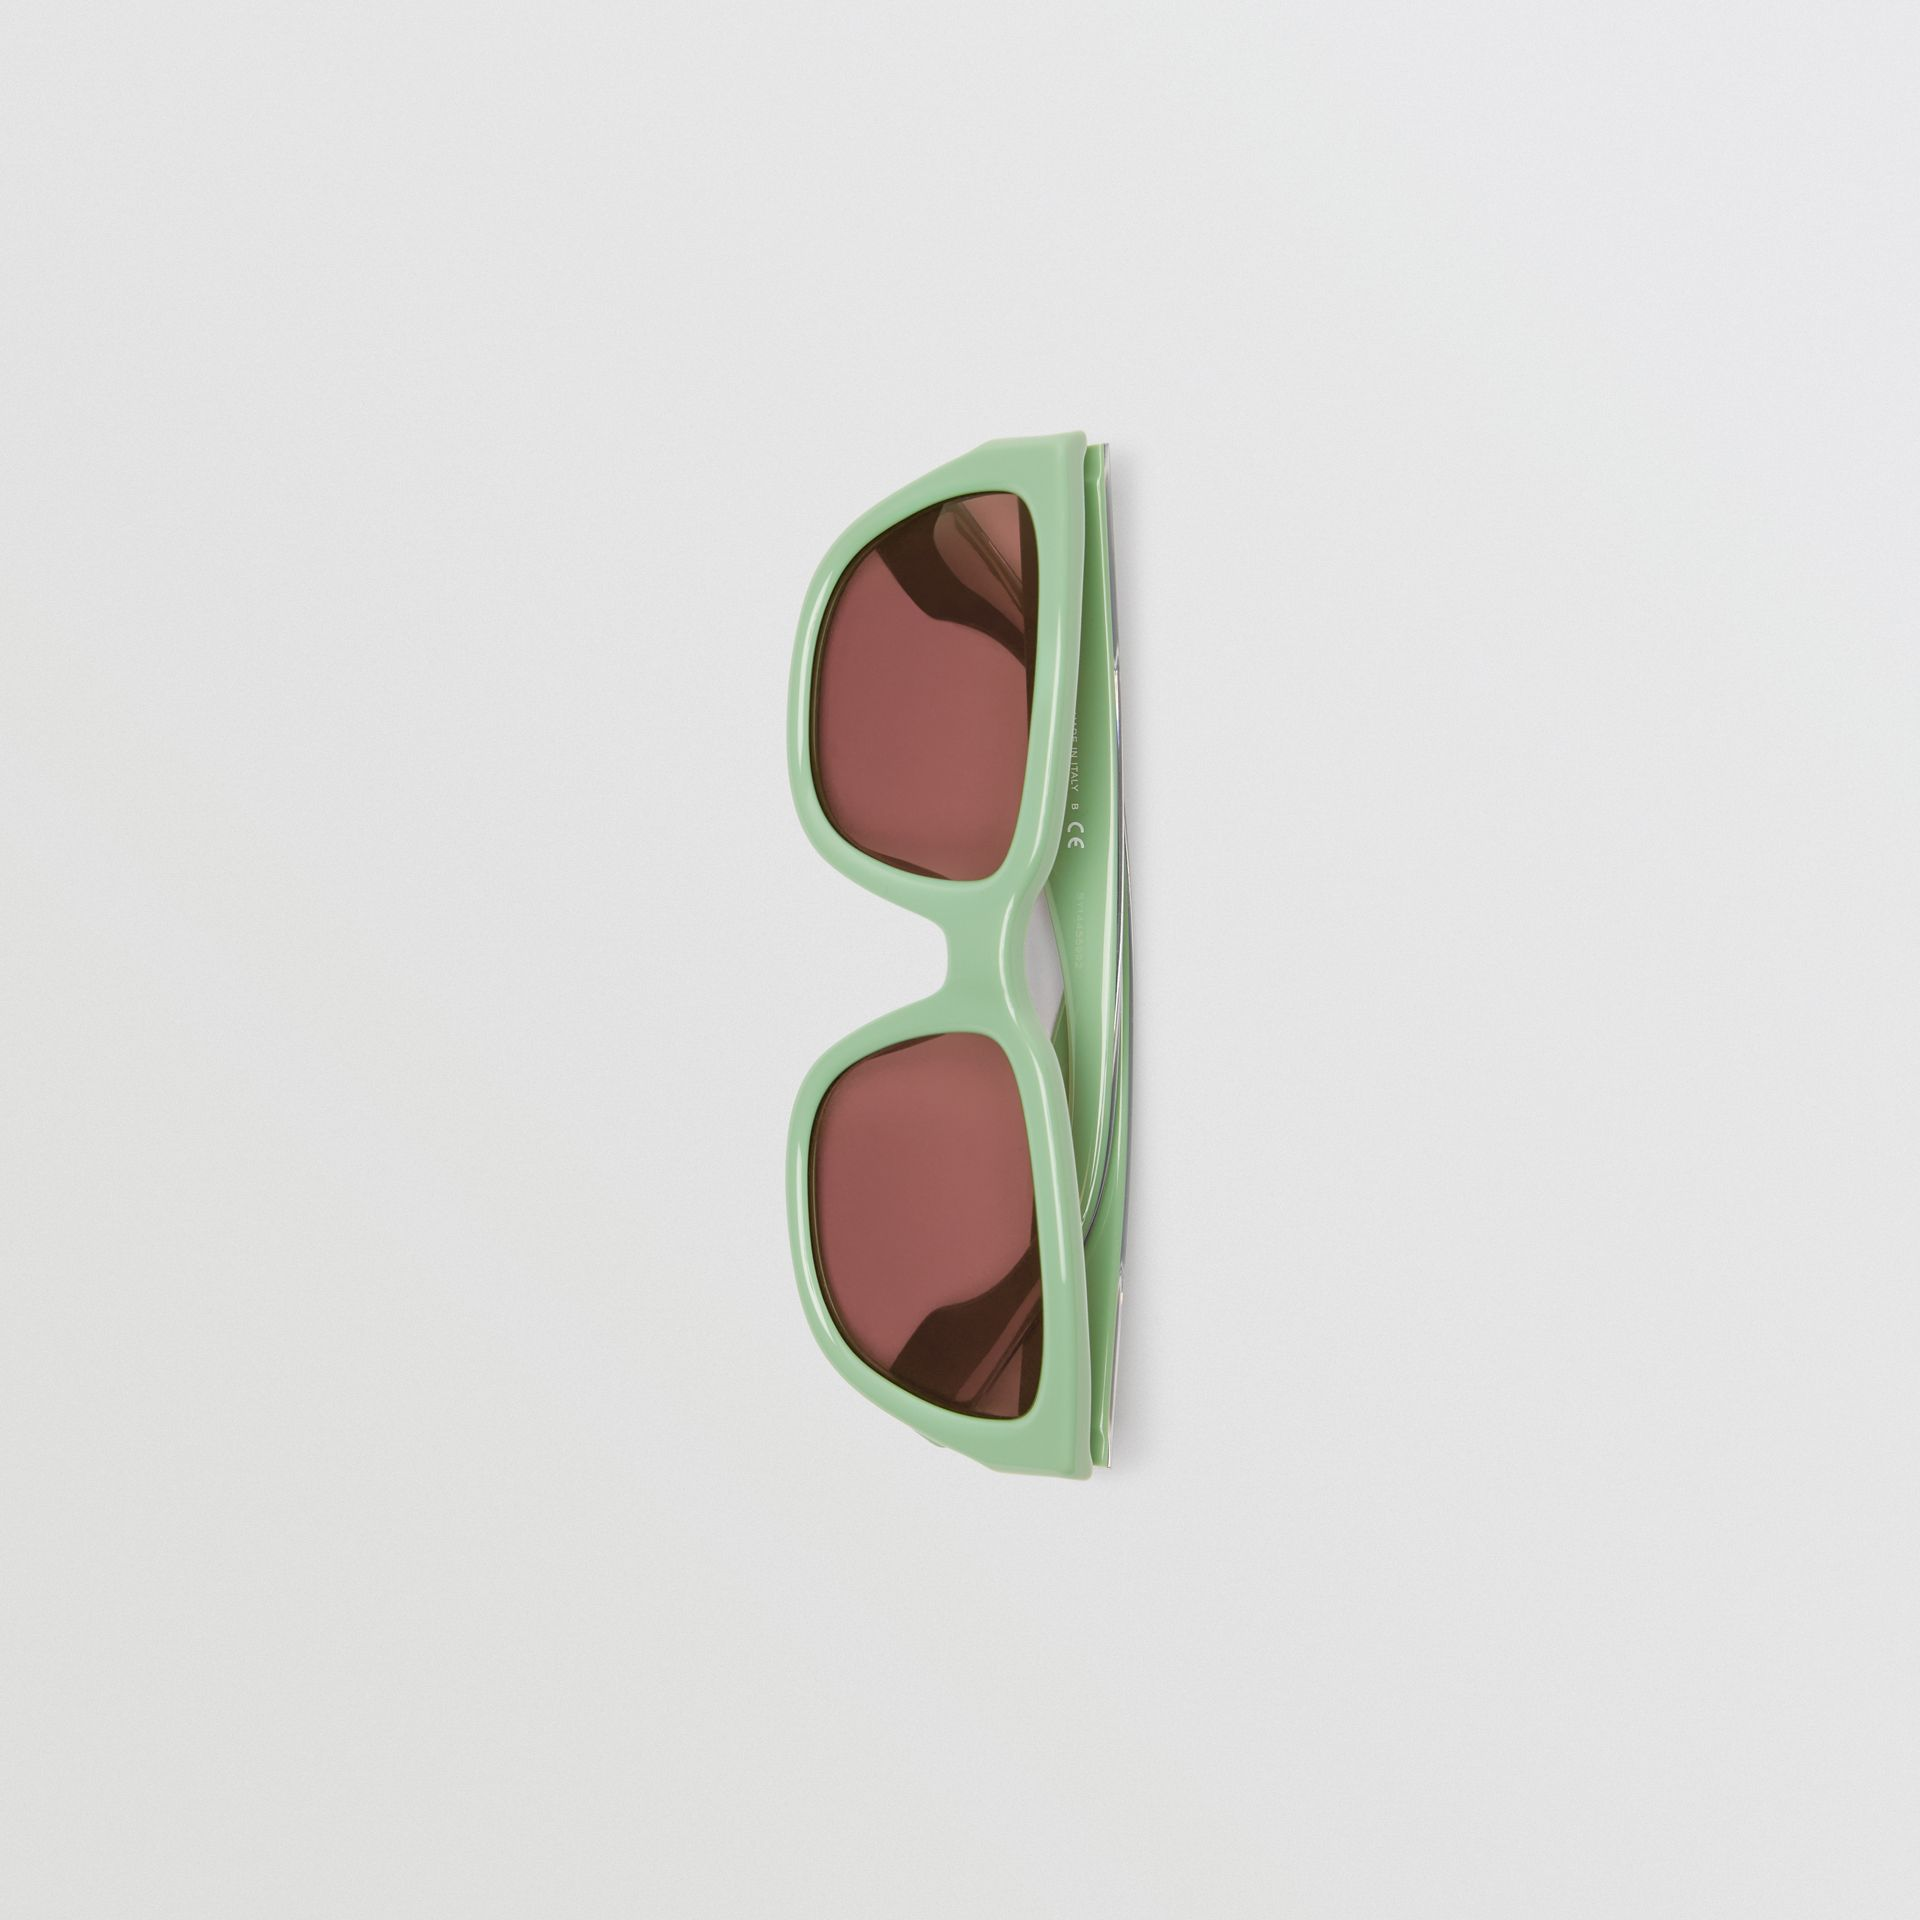 Square Frame Sunglasses in Mint Green - Women | Burberry Hong Kong - gallery image 3